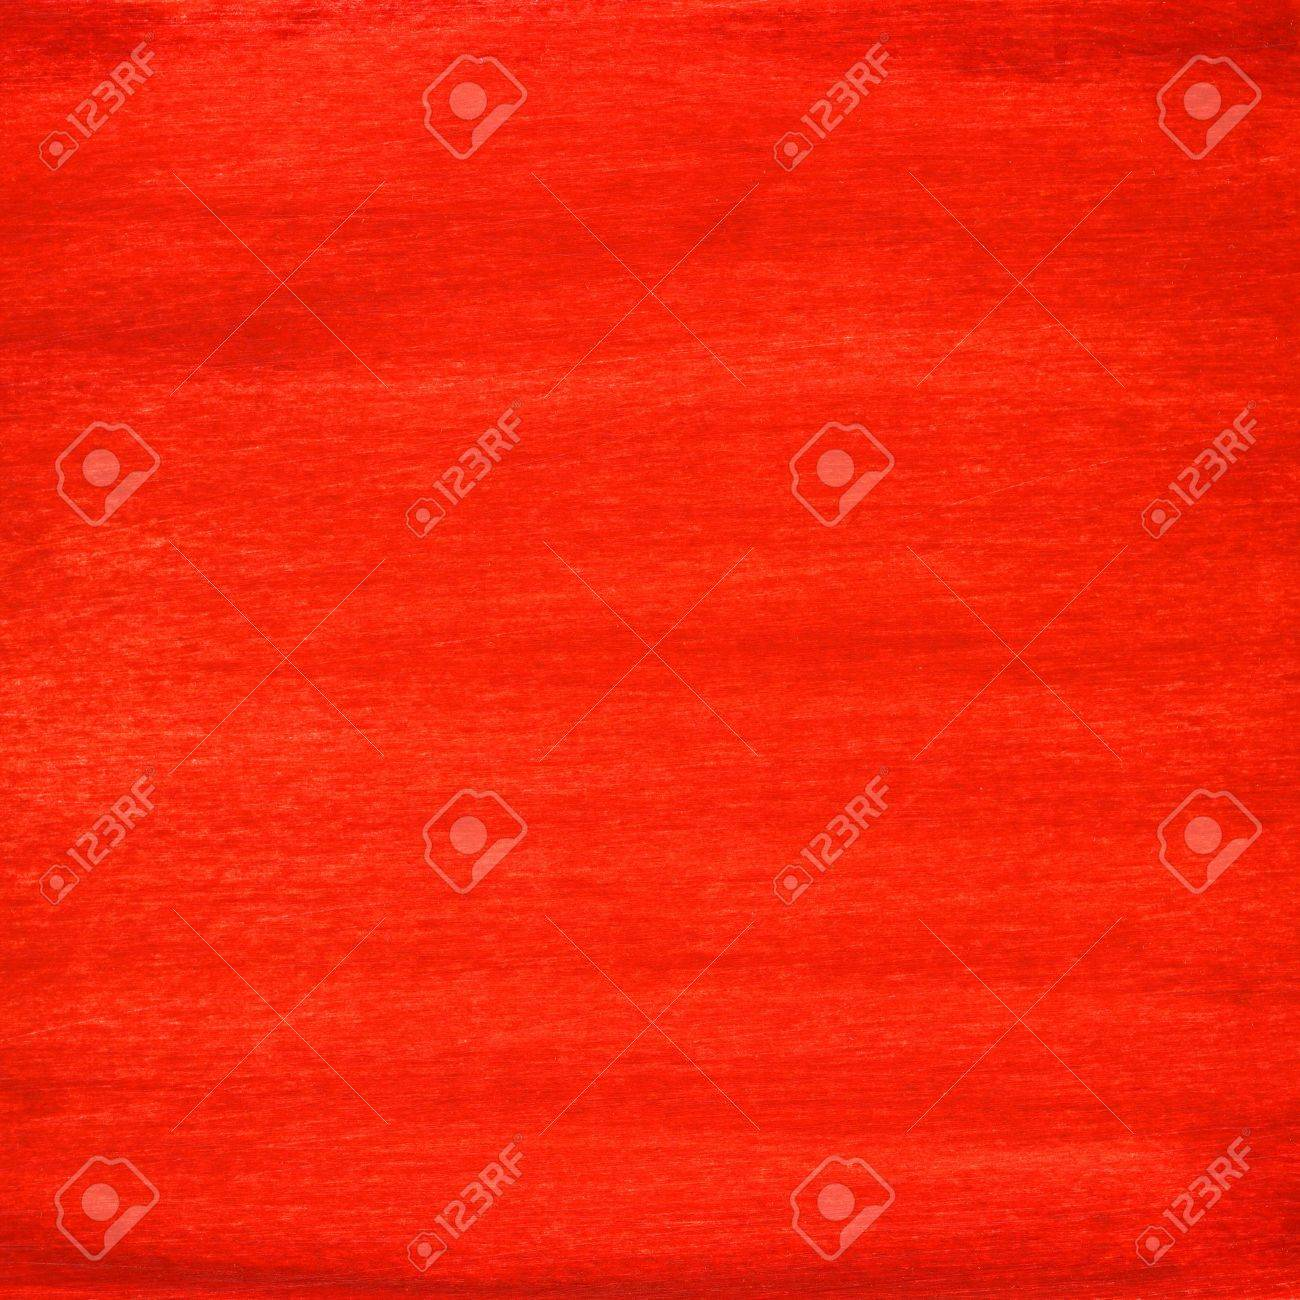 Red Hand Painted Watercolor Abstract With Scratch Texture On Paper Self Made Stock Photo